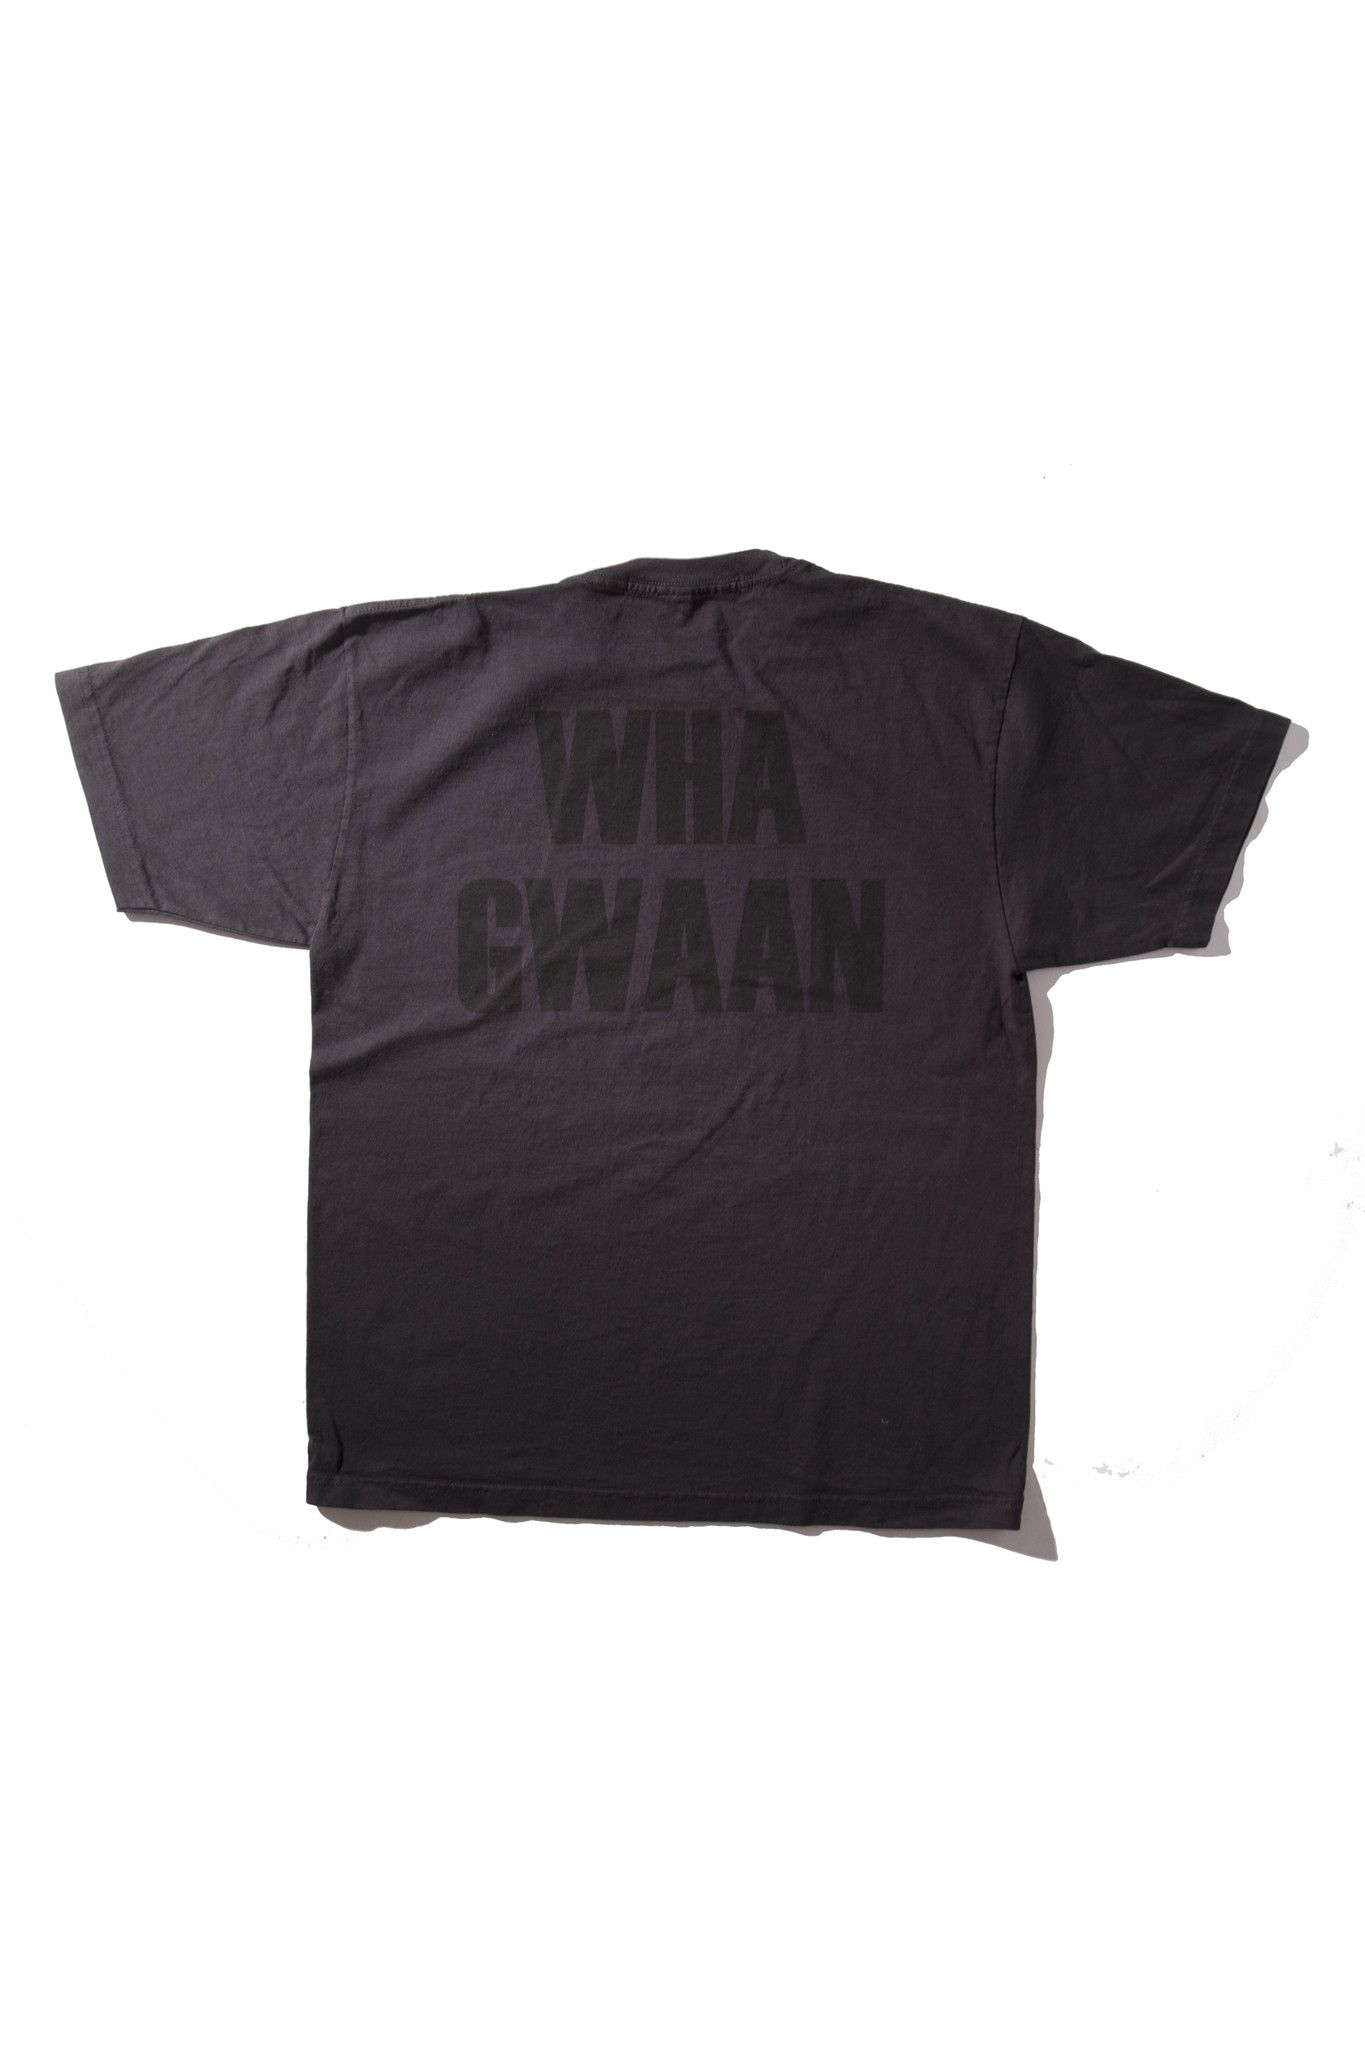 UNION LOS ANGELES UNION WHA GWAAN T-Shirt (Murdered Out)